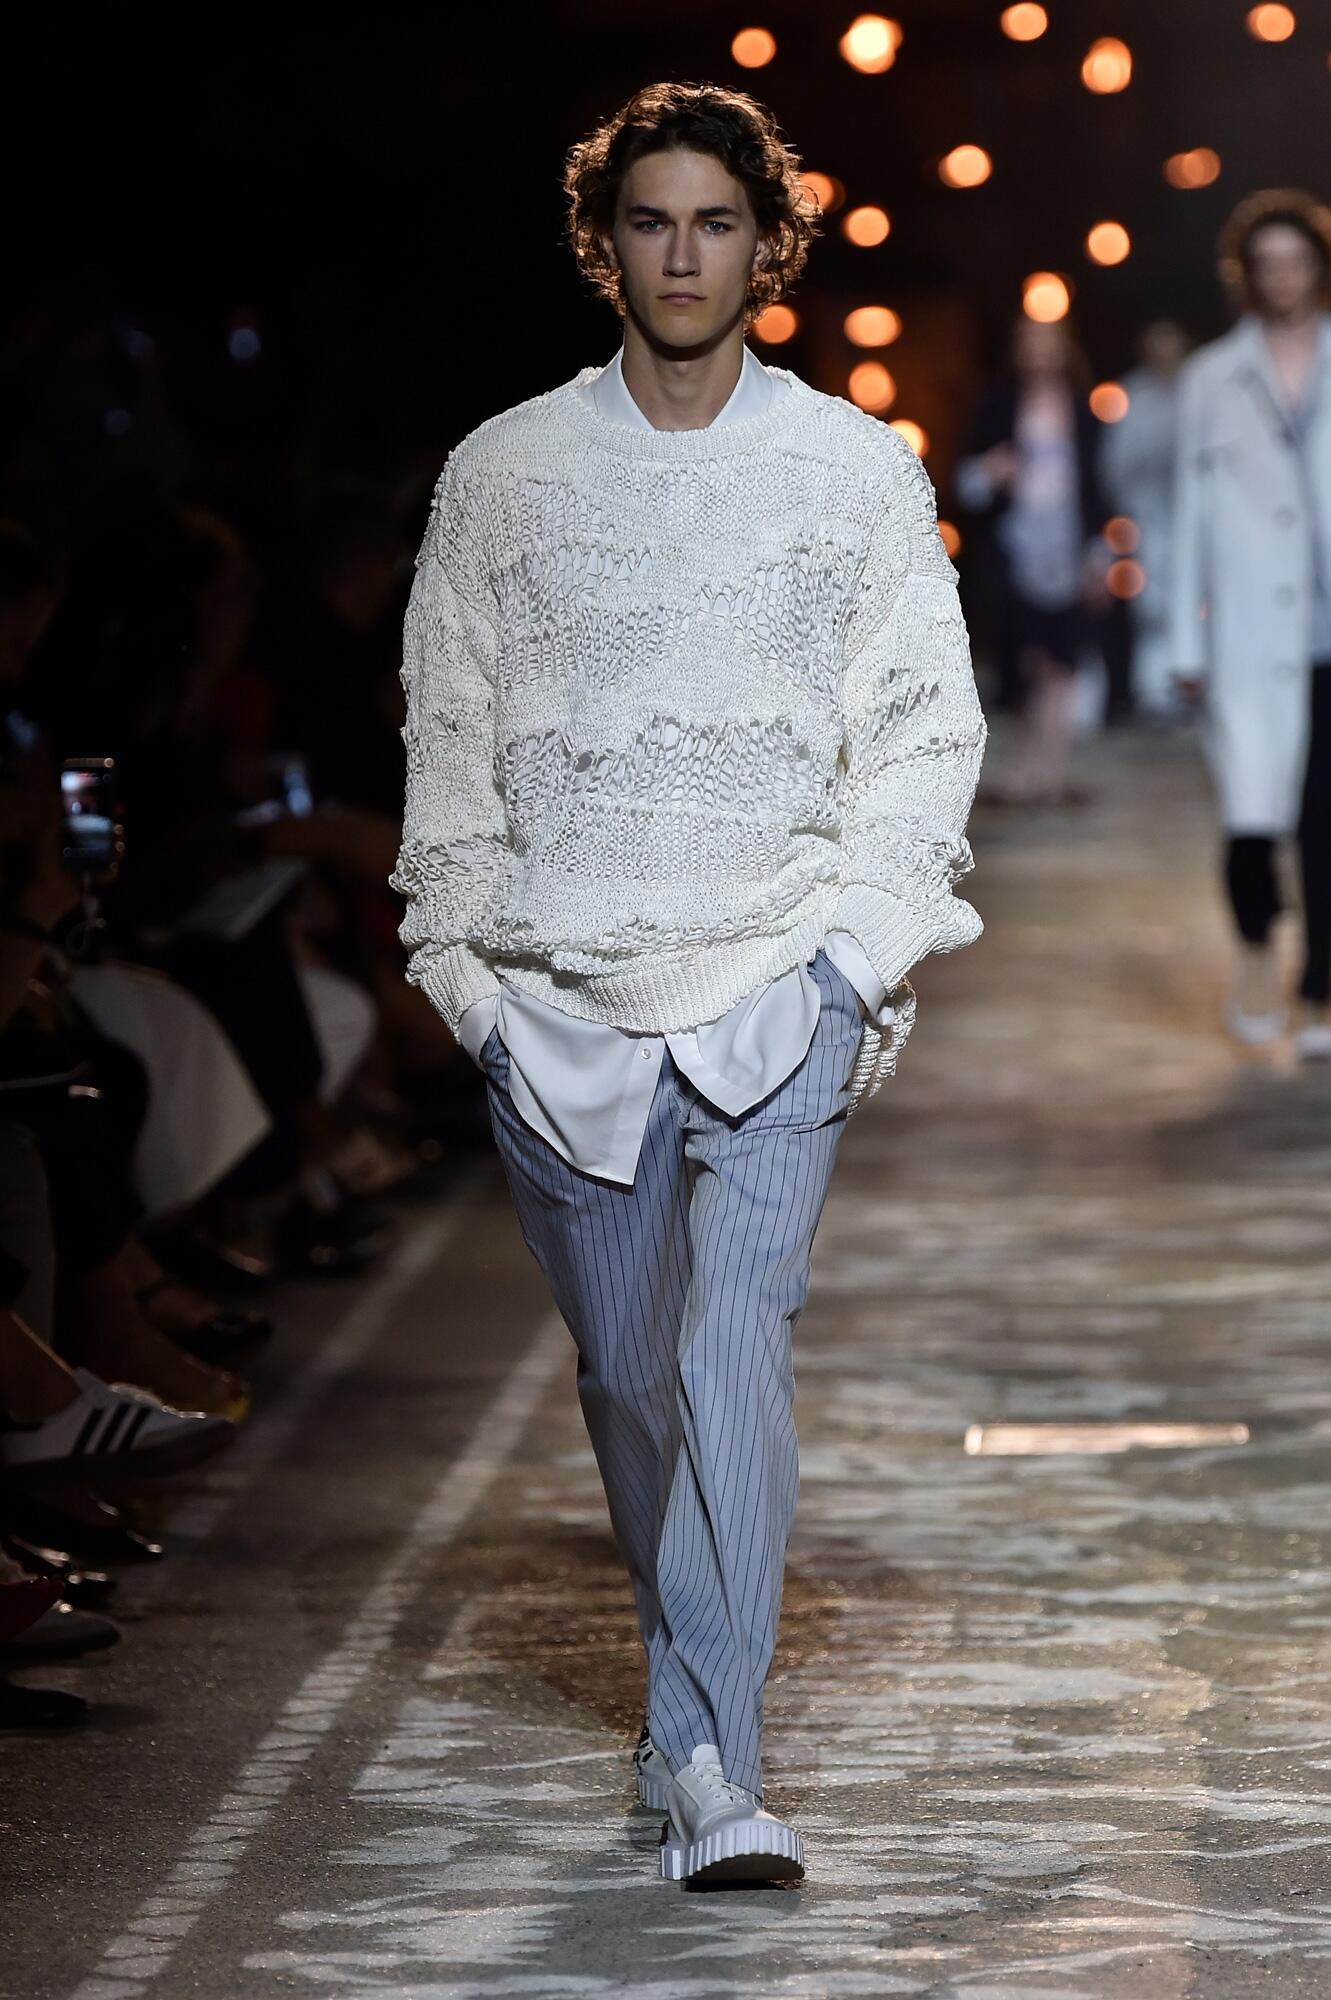 Hugo 2018 Menswear Trends